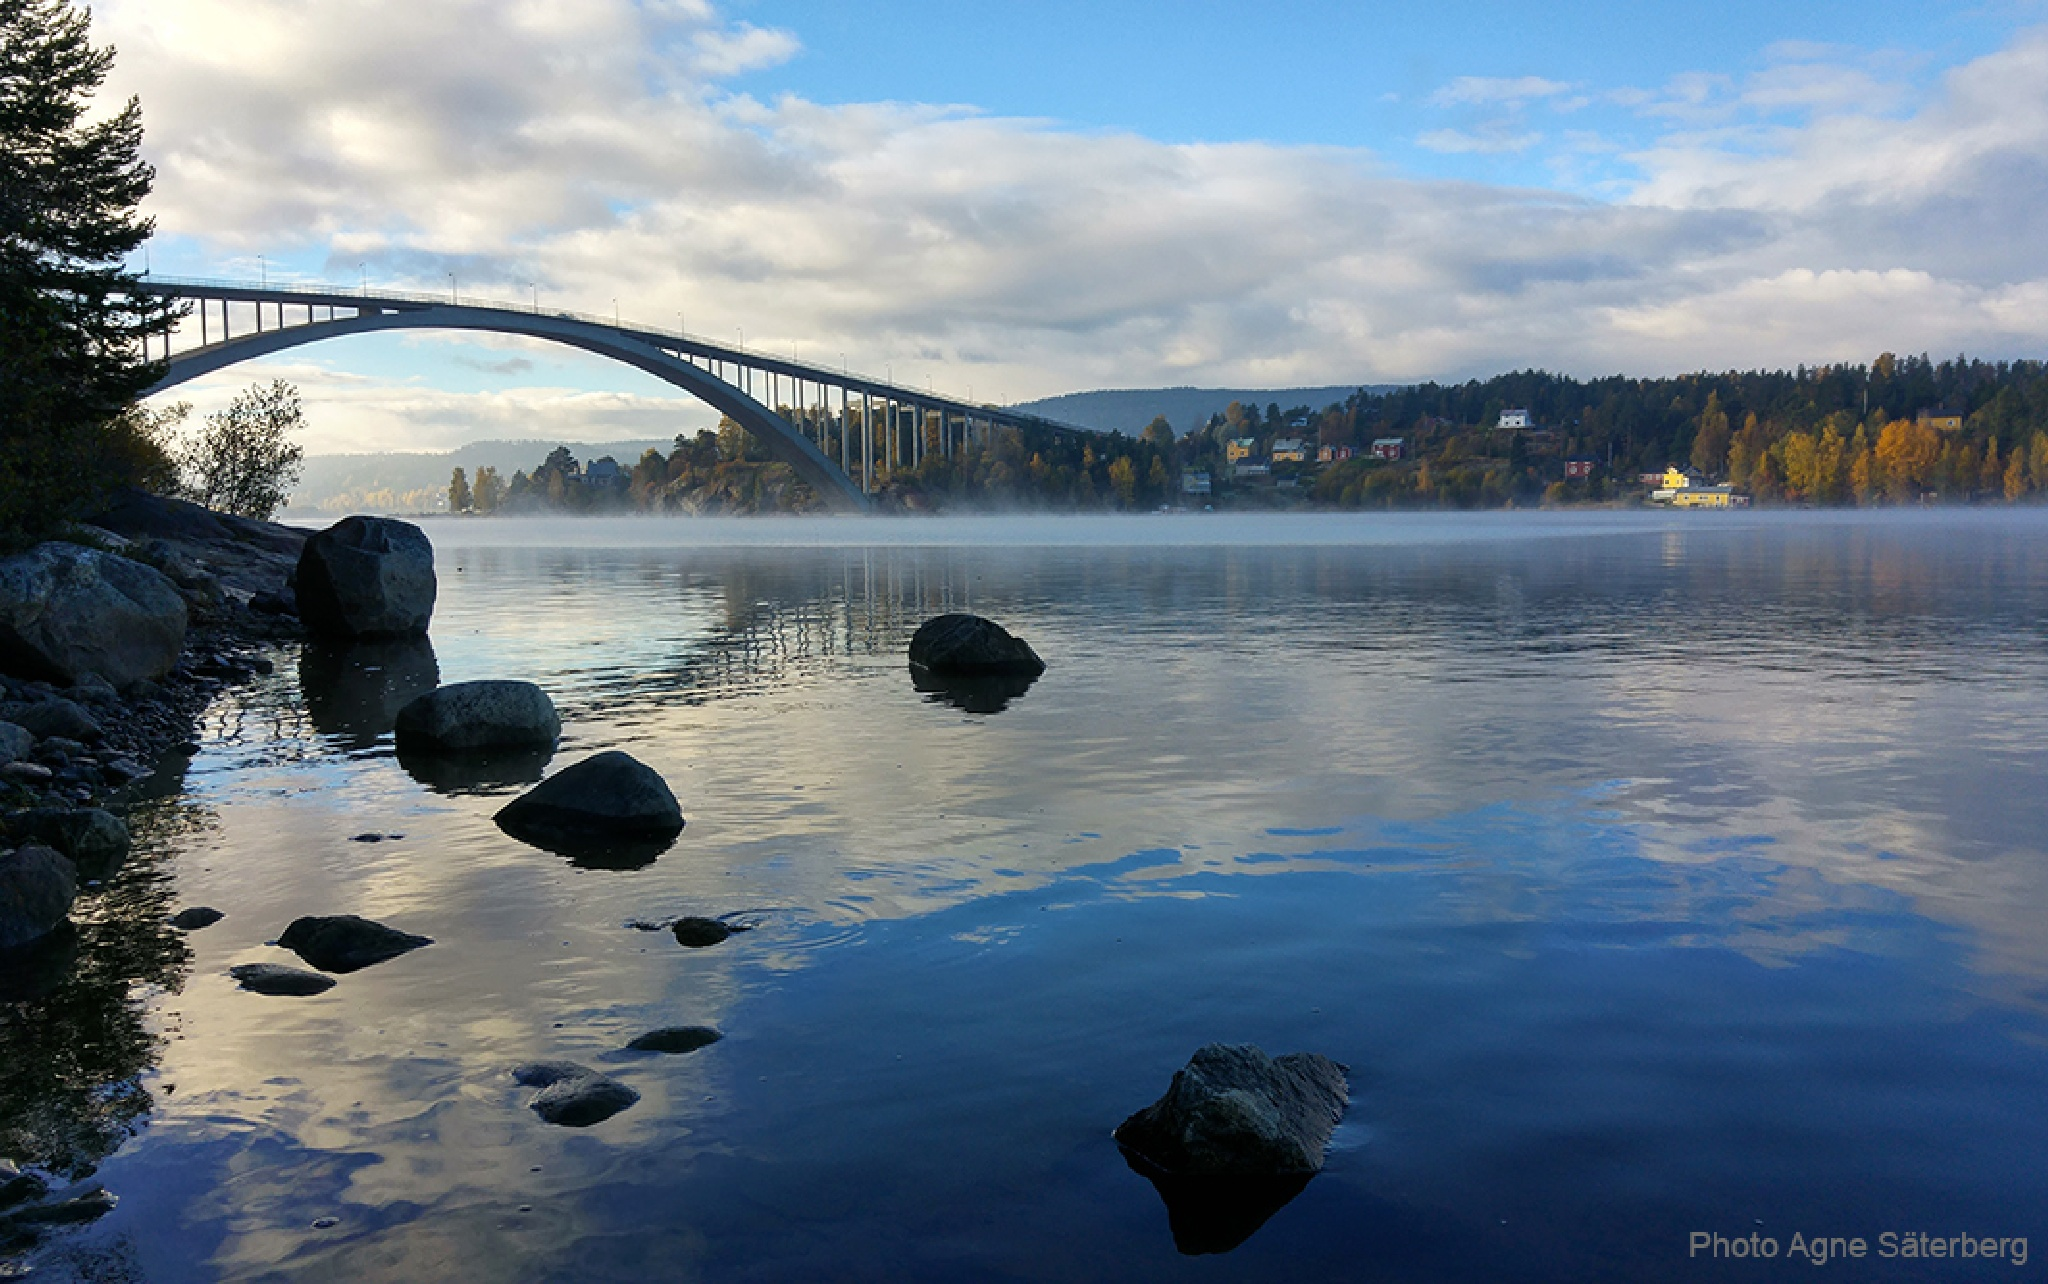 Early morning at the bridge over the River Ångermanälven by Agne Säterberg